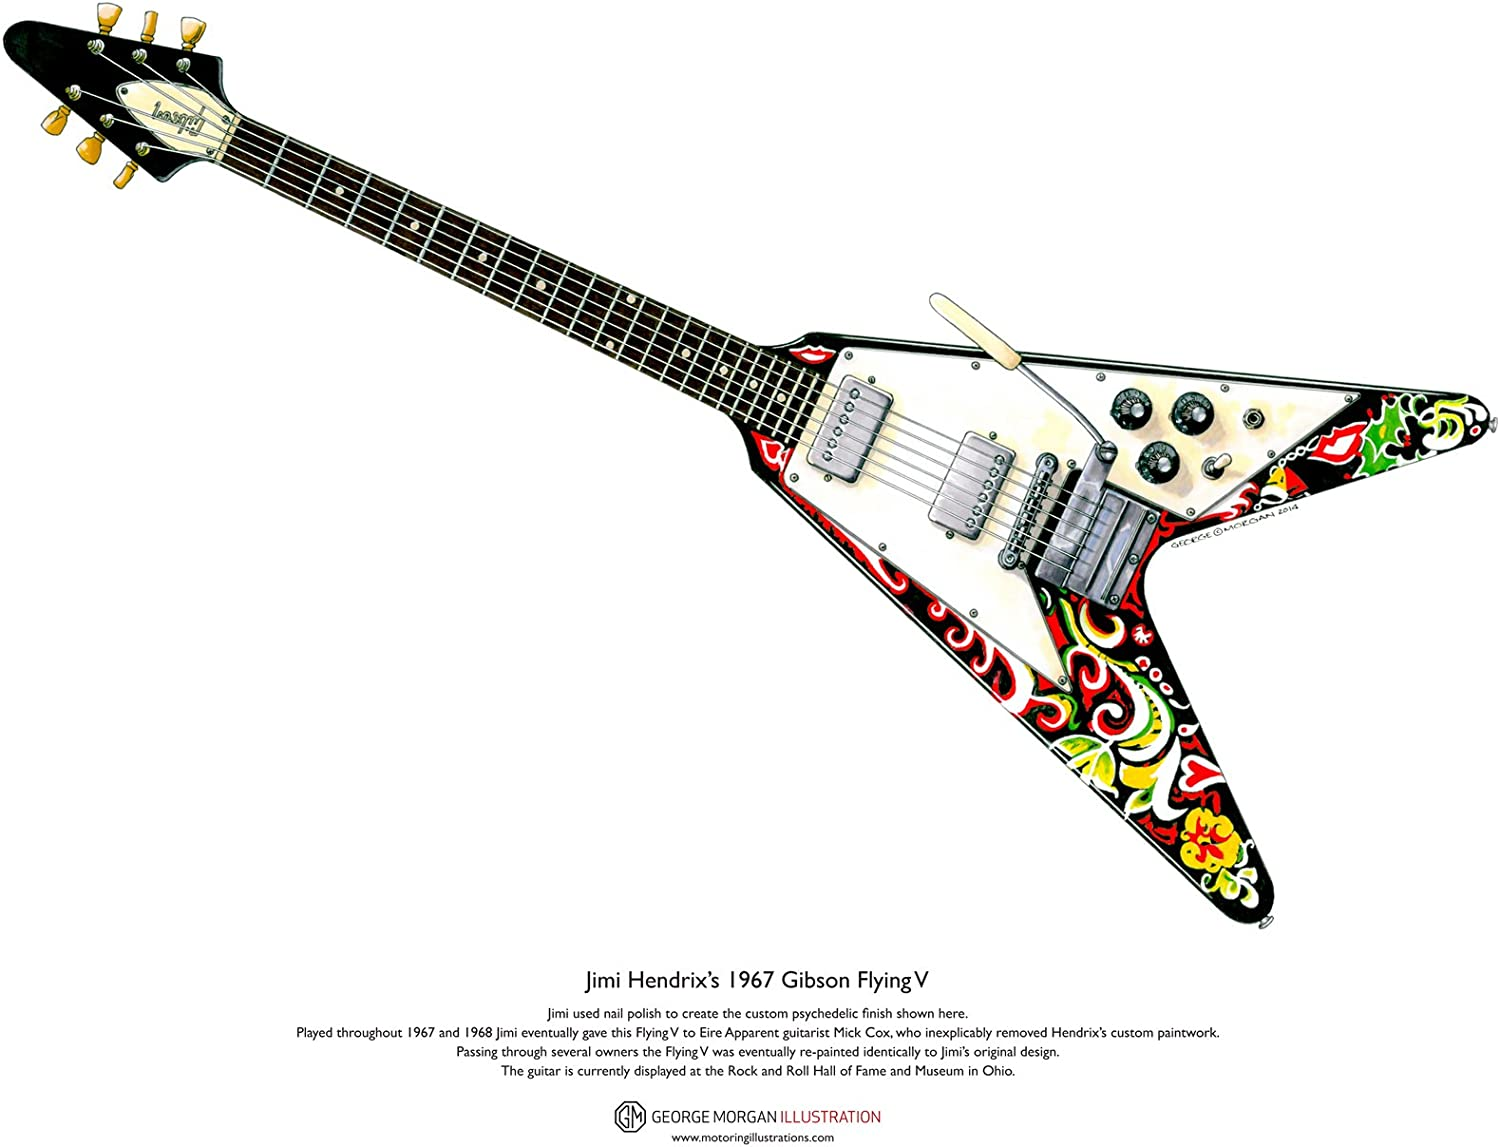 George Morgan Illustration Arte Cartel Guitarra de Jimi Hendrix ...